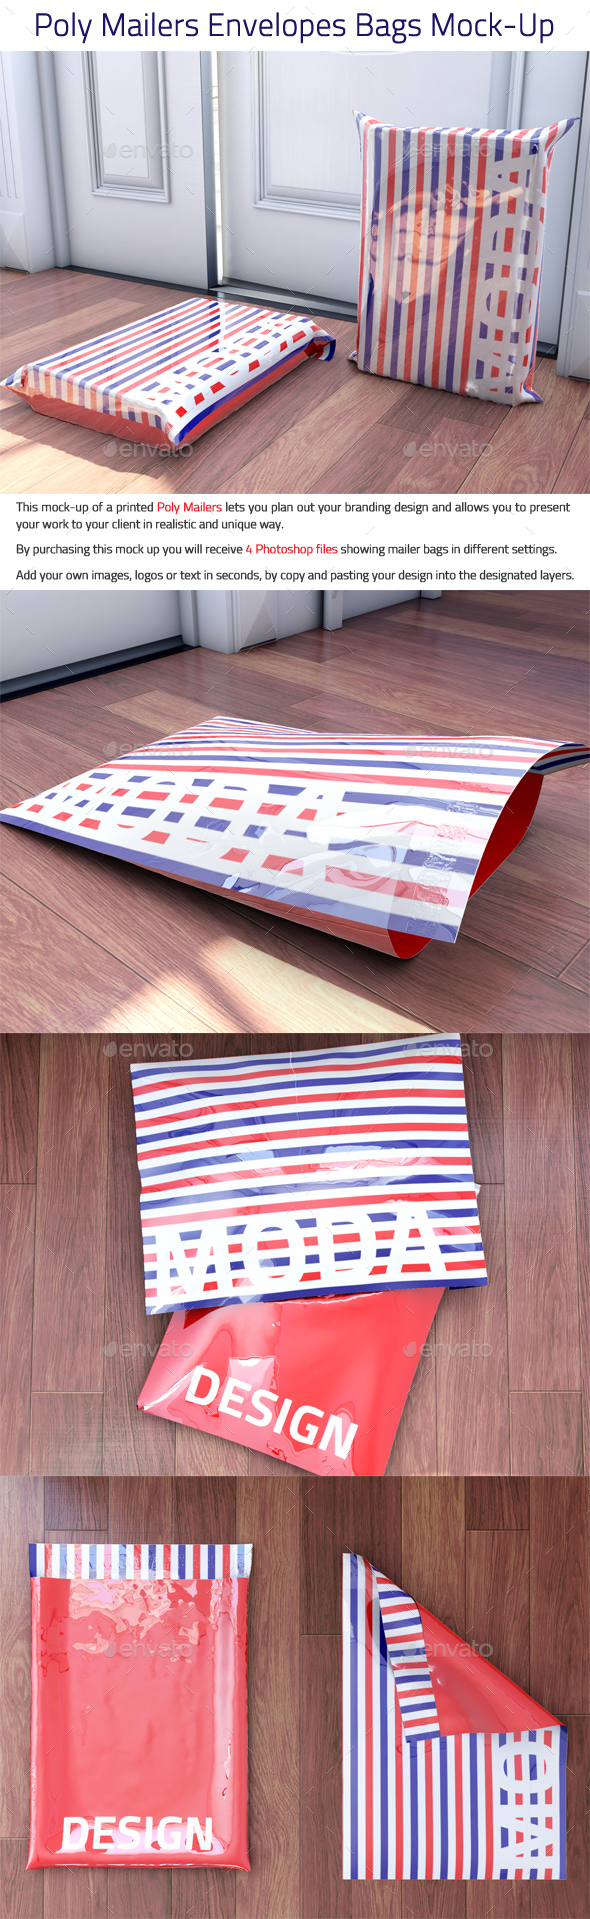 Poly Mailers Envelopes Bags Mock-Up - Packaging Product Mock-Ups